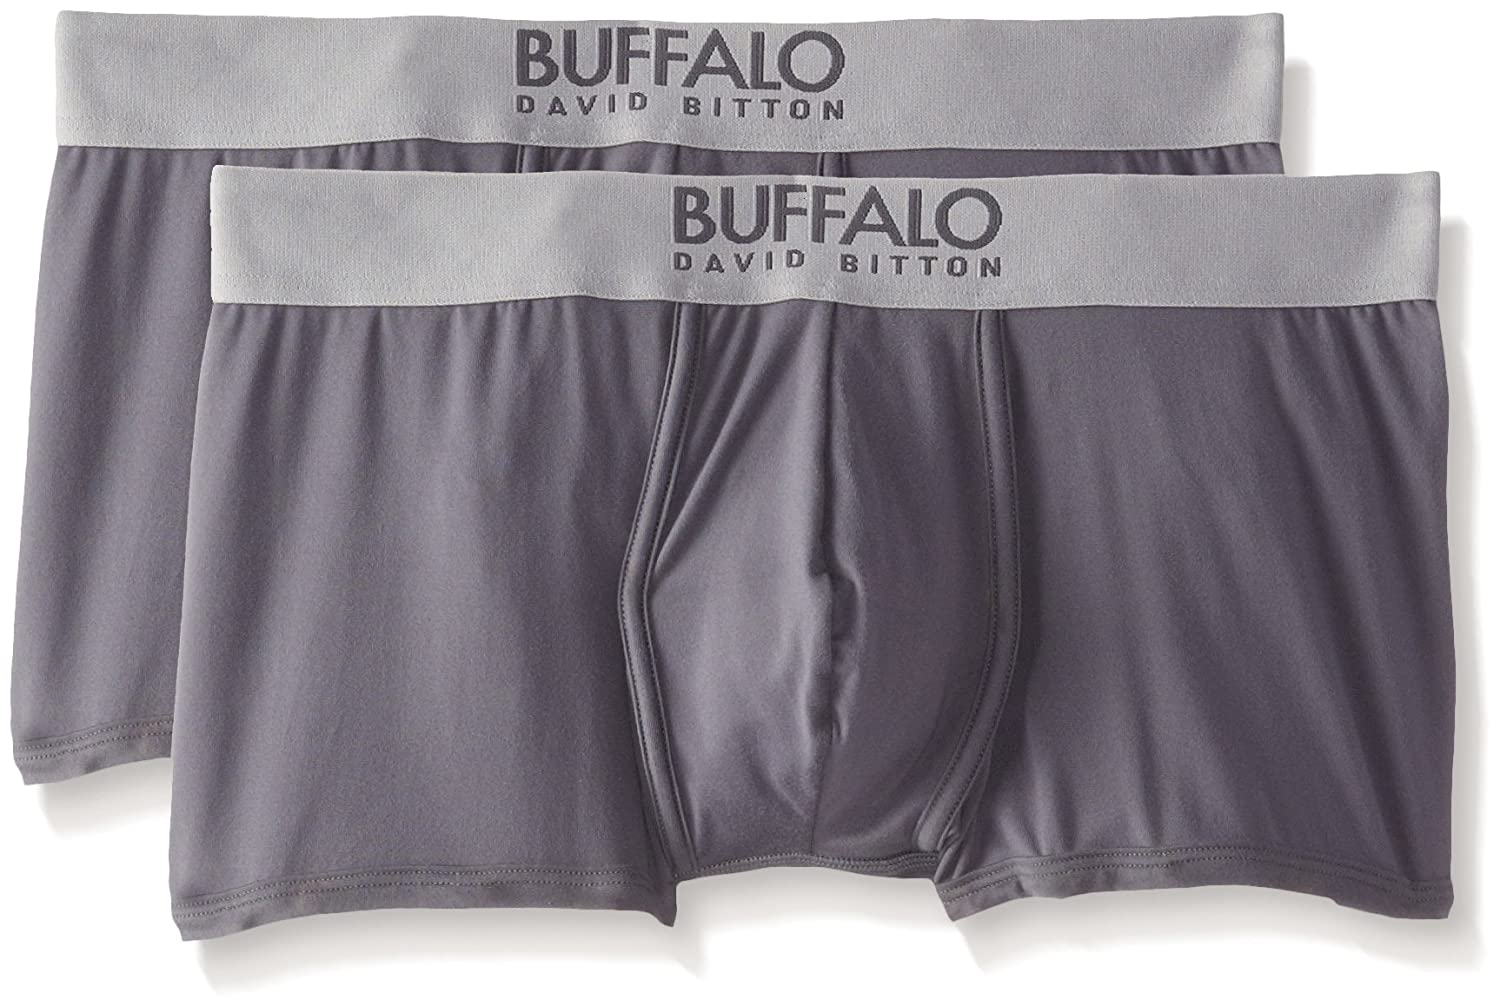 Buffalo David Bitton Men's Microfiber Stretch Trunk